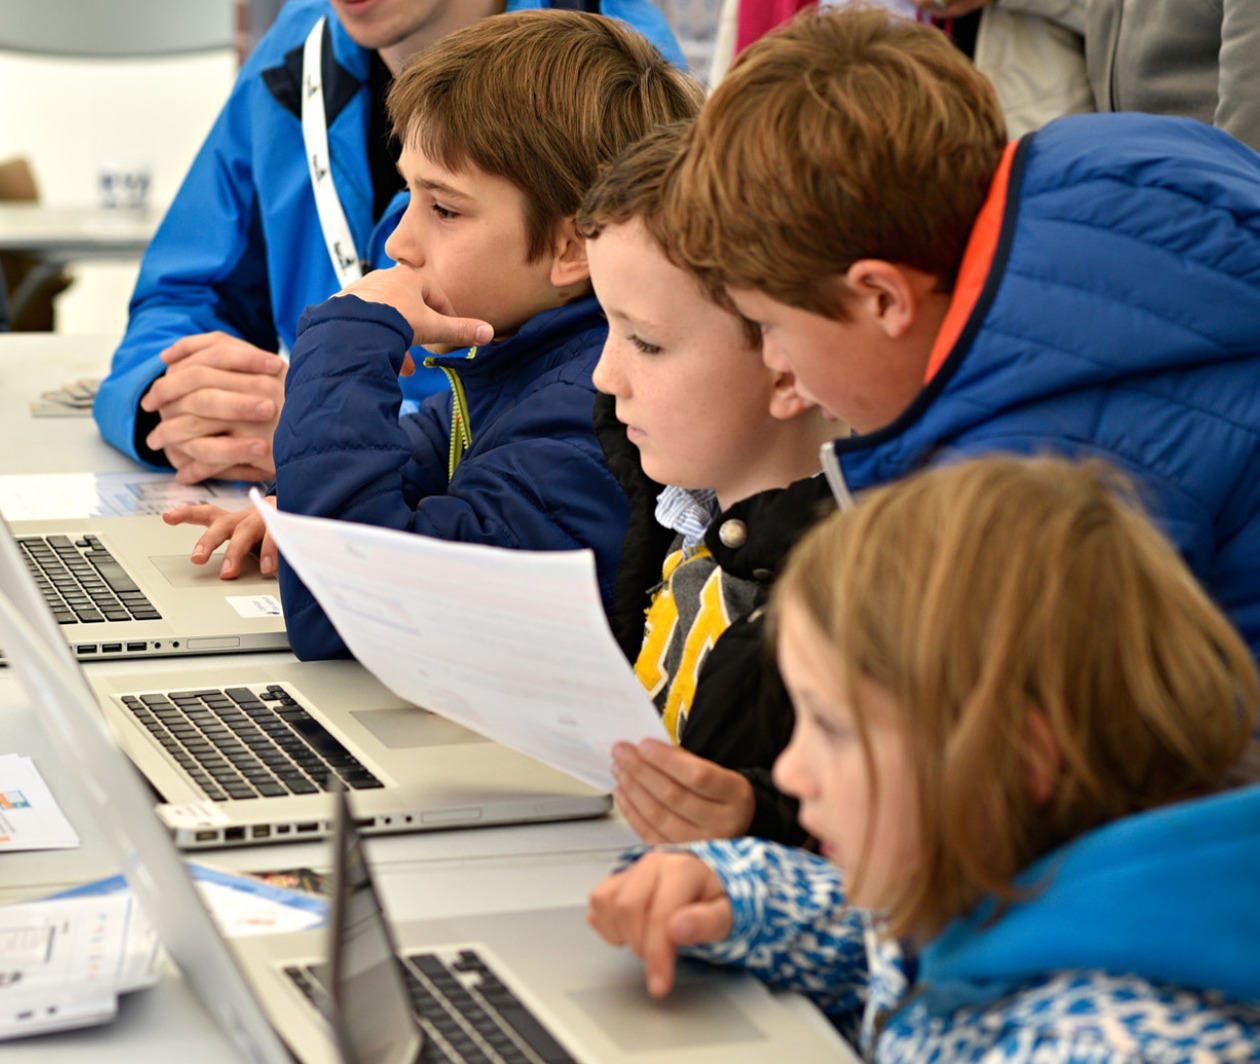 Start a CoderDojo Club